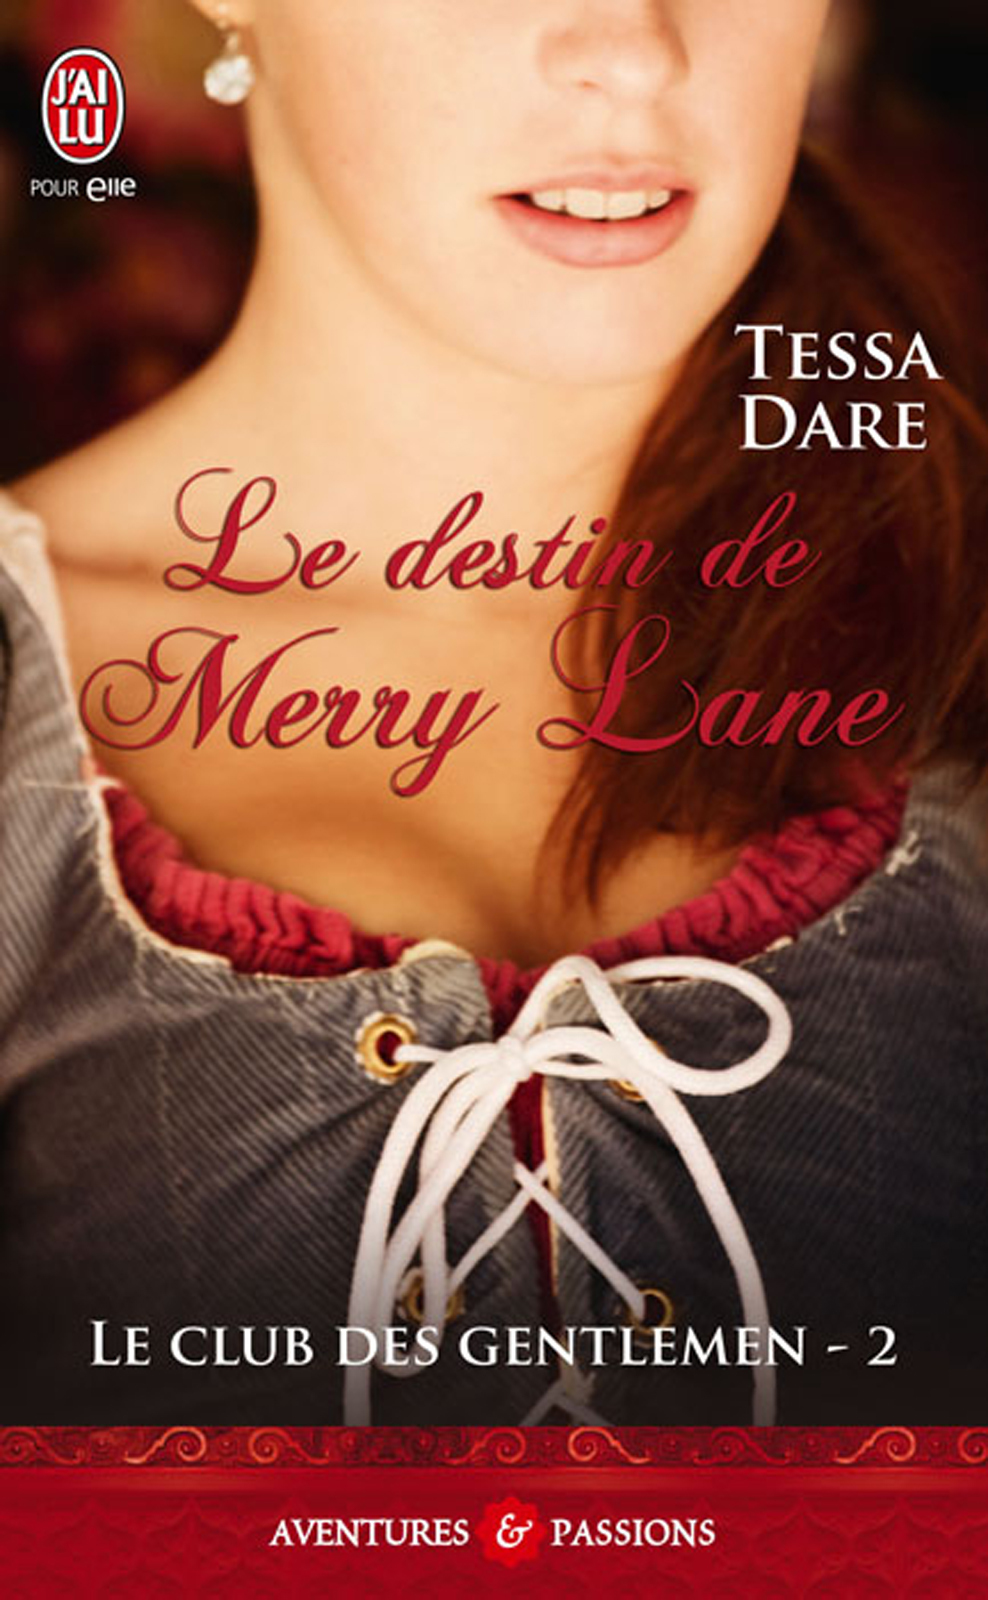 Le club des gentlemen (Tome 2) - Le destin de Merry Lane